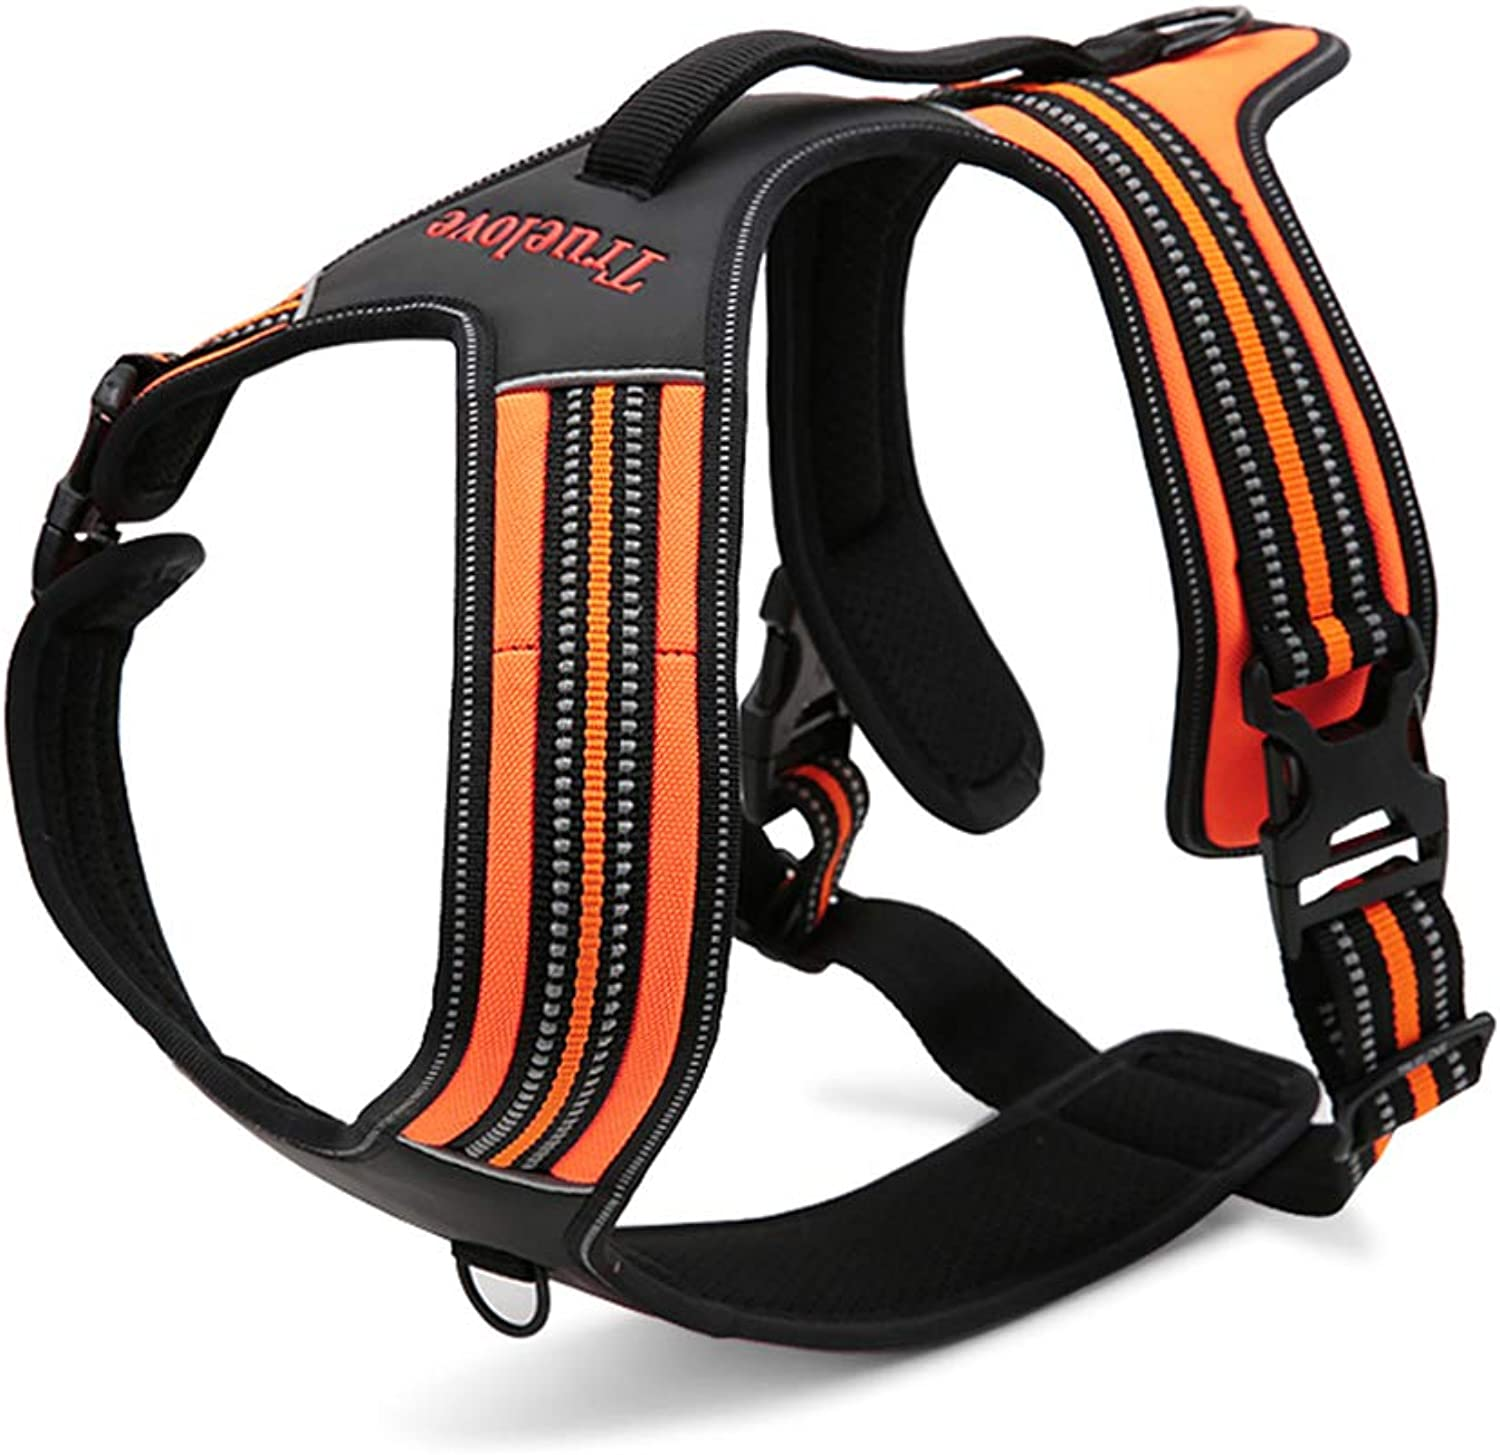 Dog Chest Harness Vest with Handle on Top Breathable Nylon Material is Suitable for All Kinds of Dogs Walking, Hiking